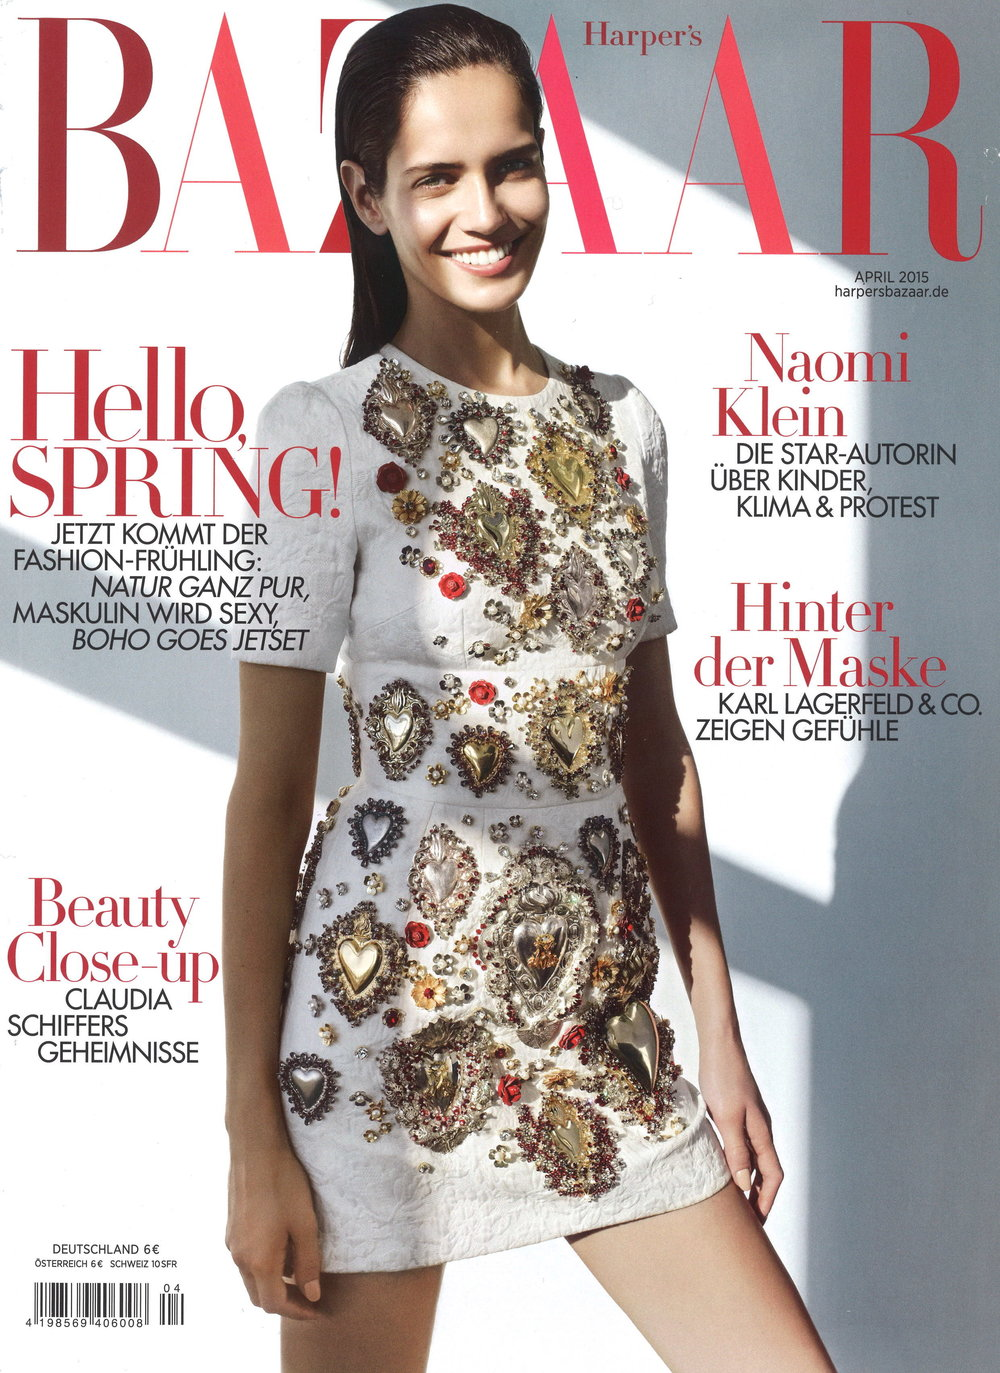 HarpersBazaar_APRIL15cover.jpg